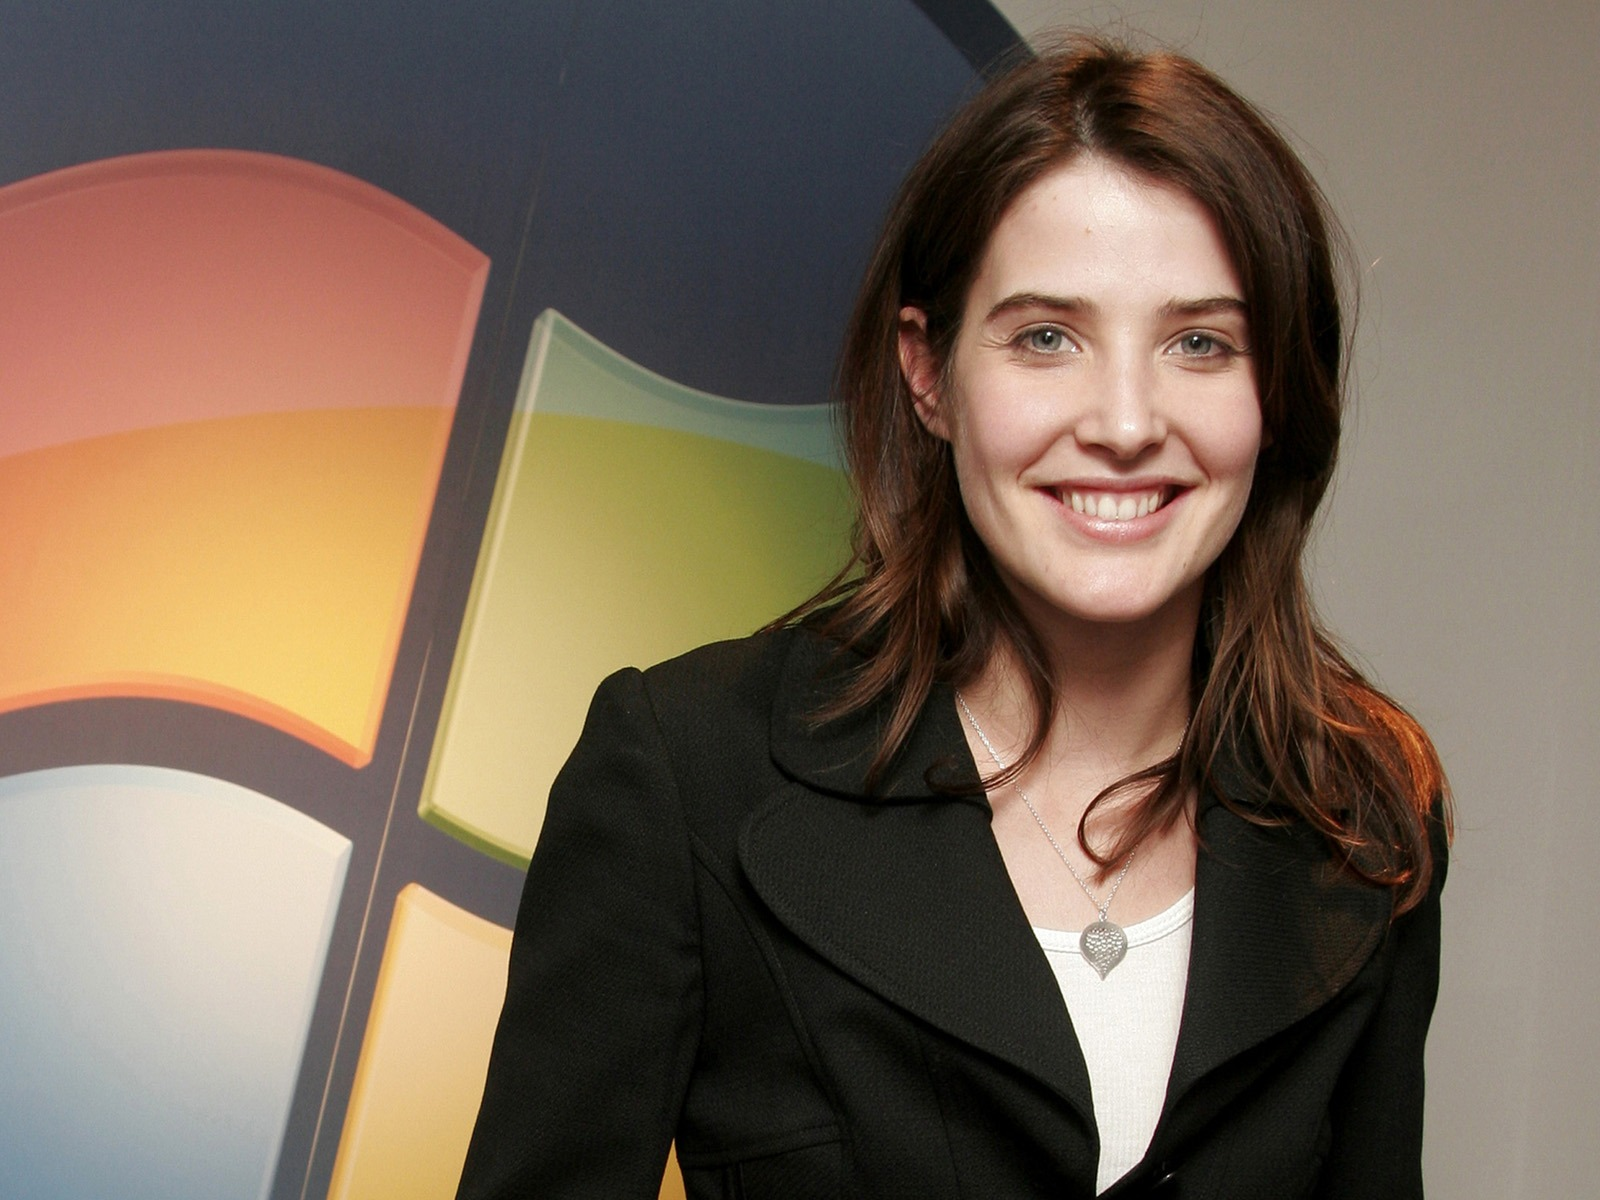 Cobie Smulders #009 - 1600x1200 Wallpapers Pictures Photos Images